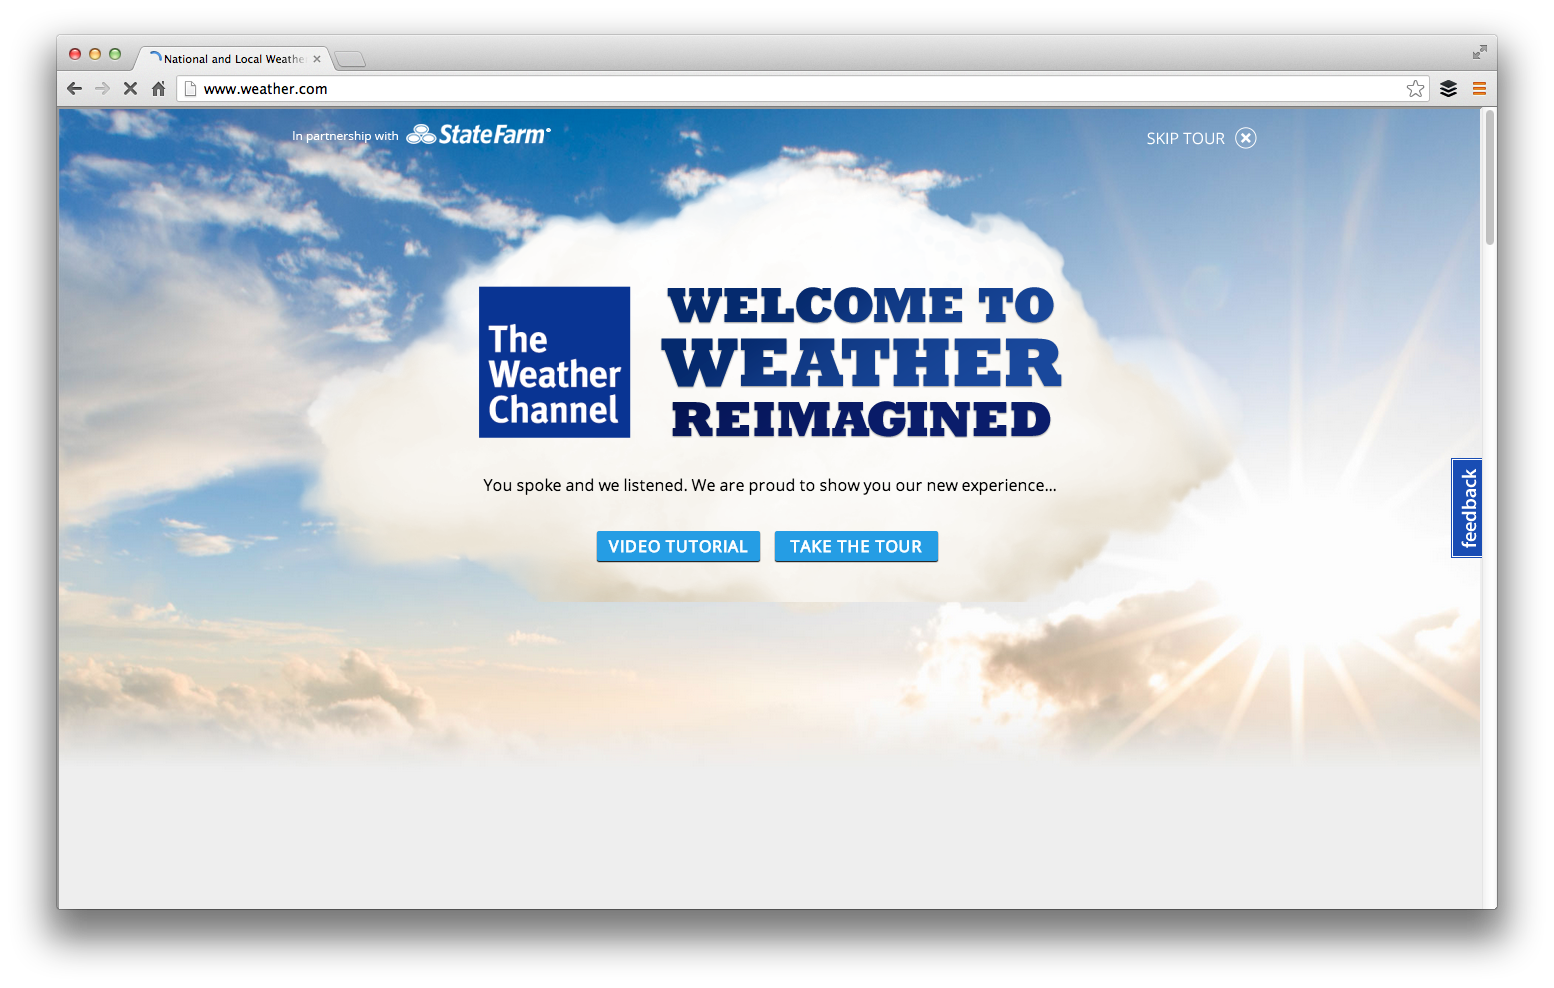 Robservations: The Weather Channel tour